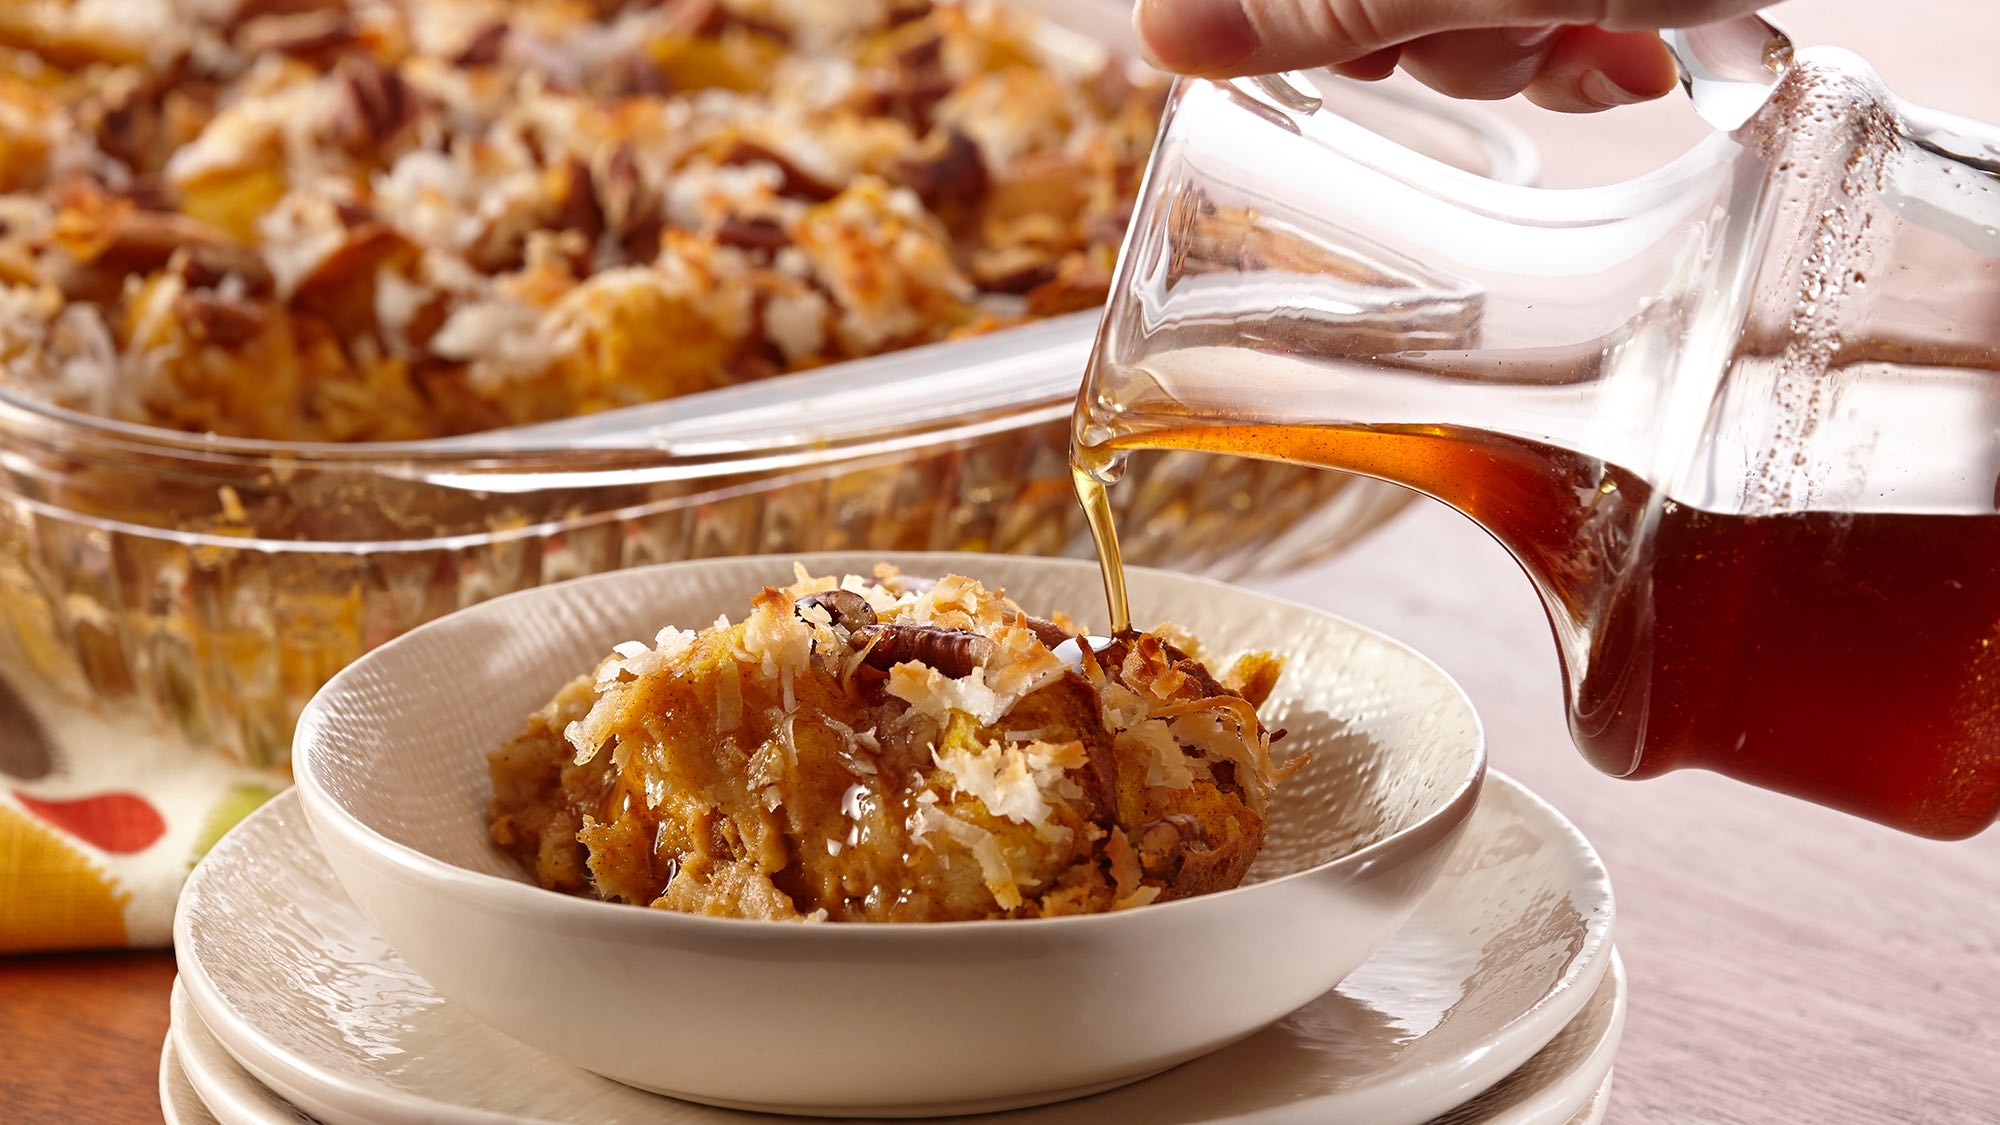 McCormick Coconut Pumpkin Bread Pudding with Spiced Maple Syrup